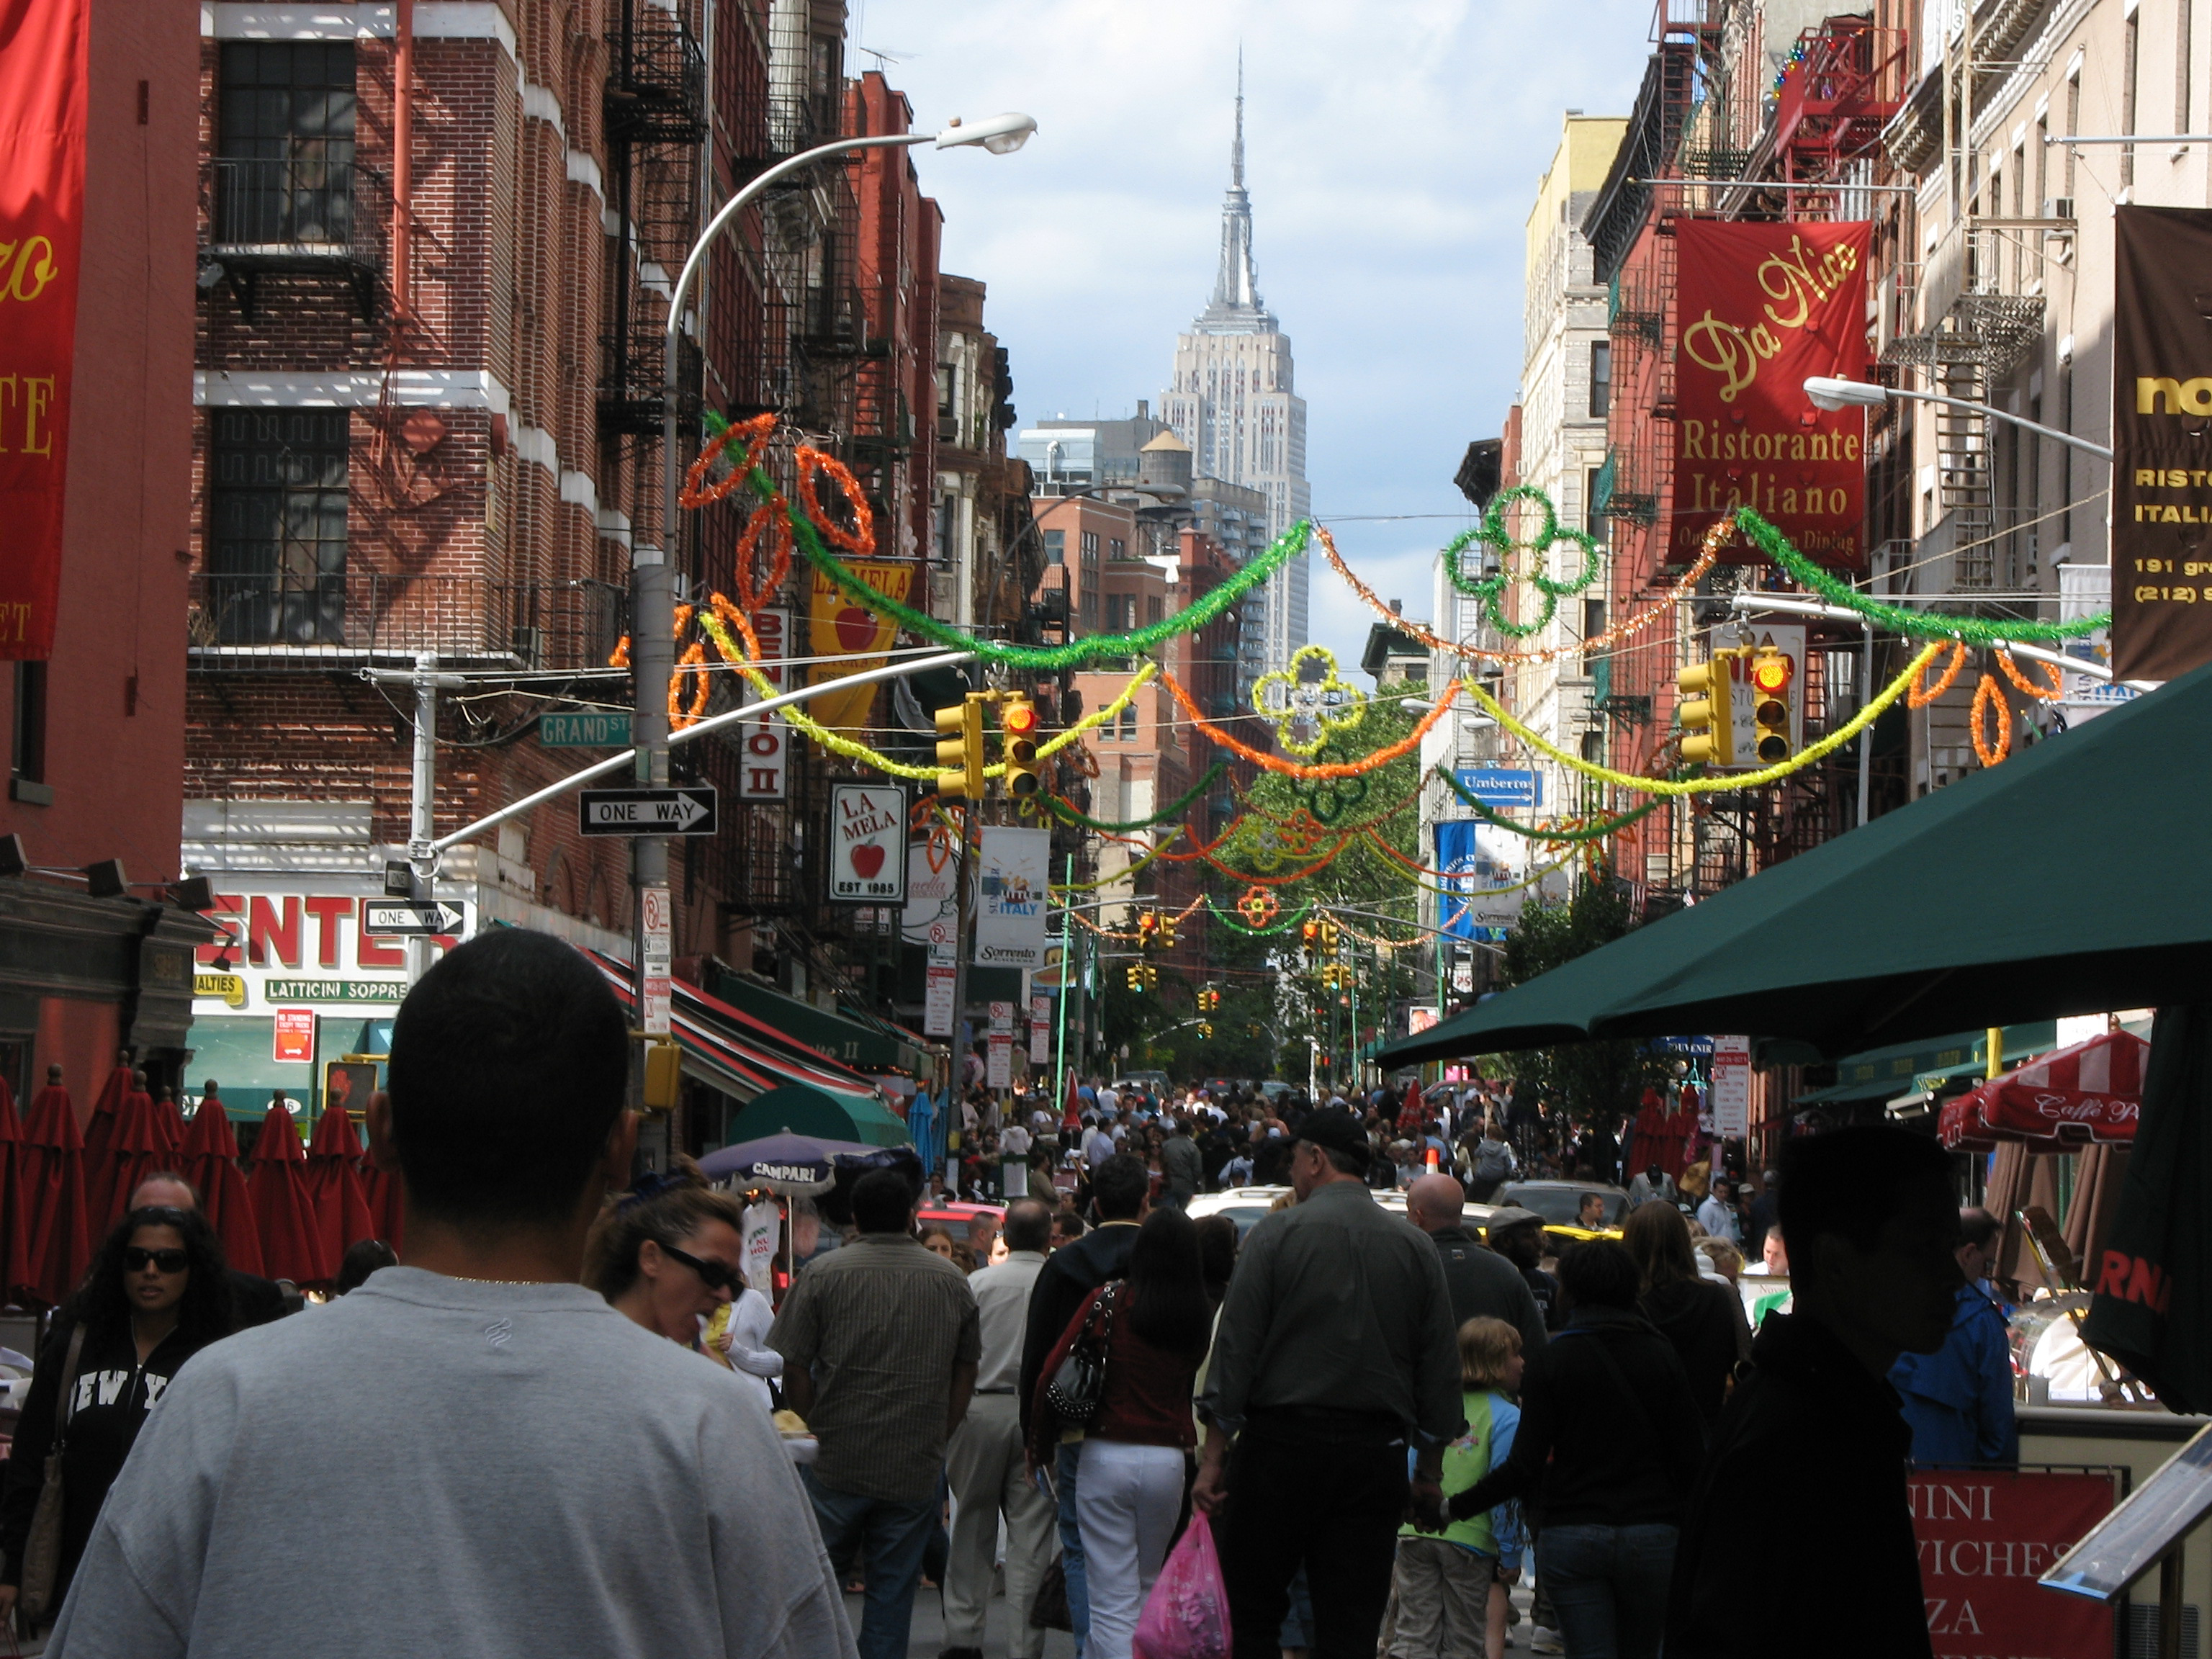 Little ireland chinatown and little italy history and tasting tour